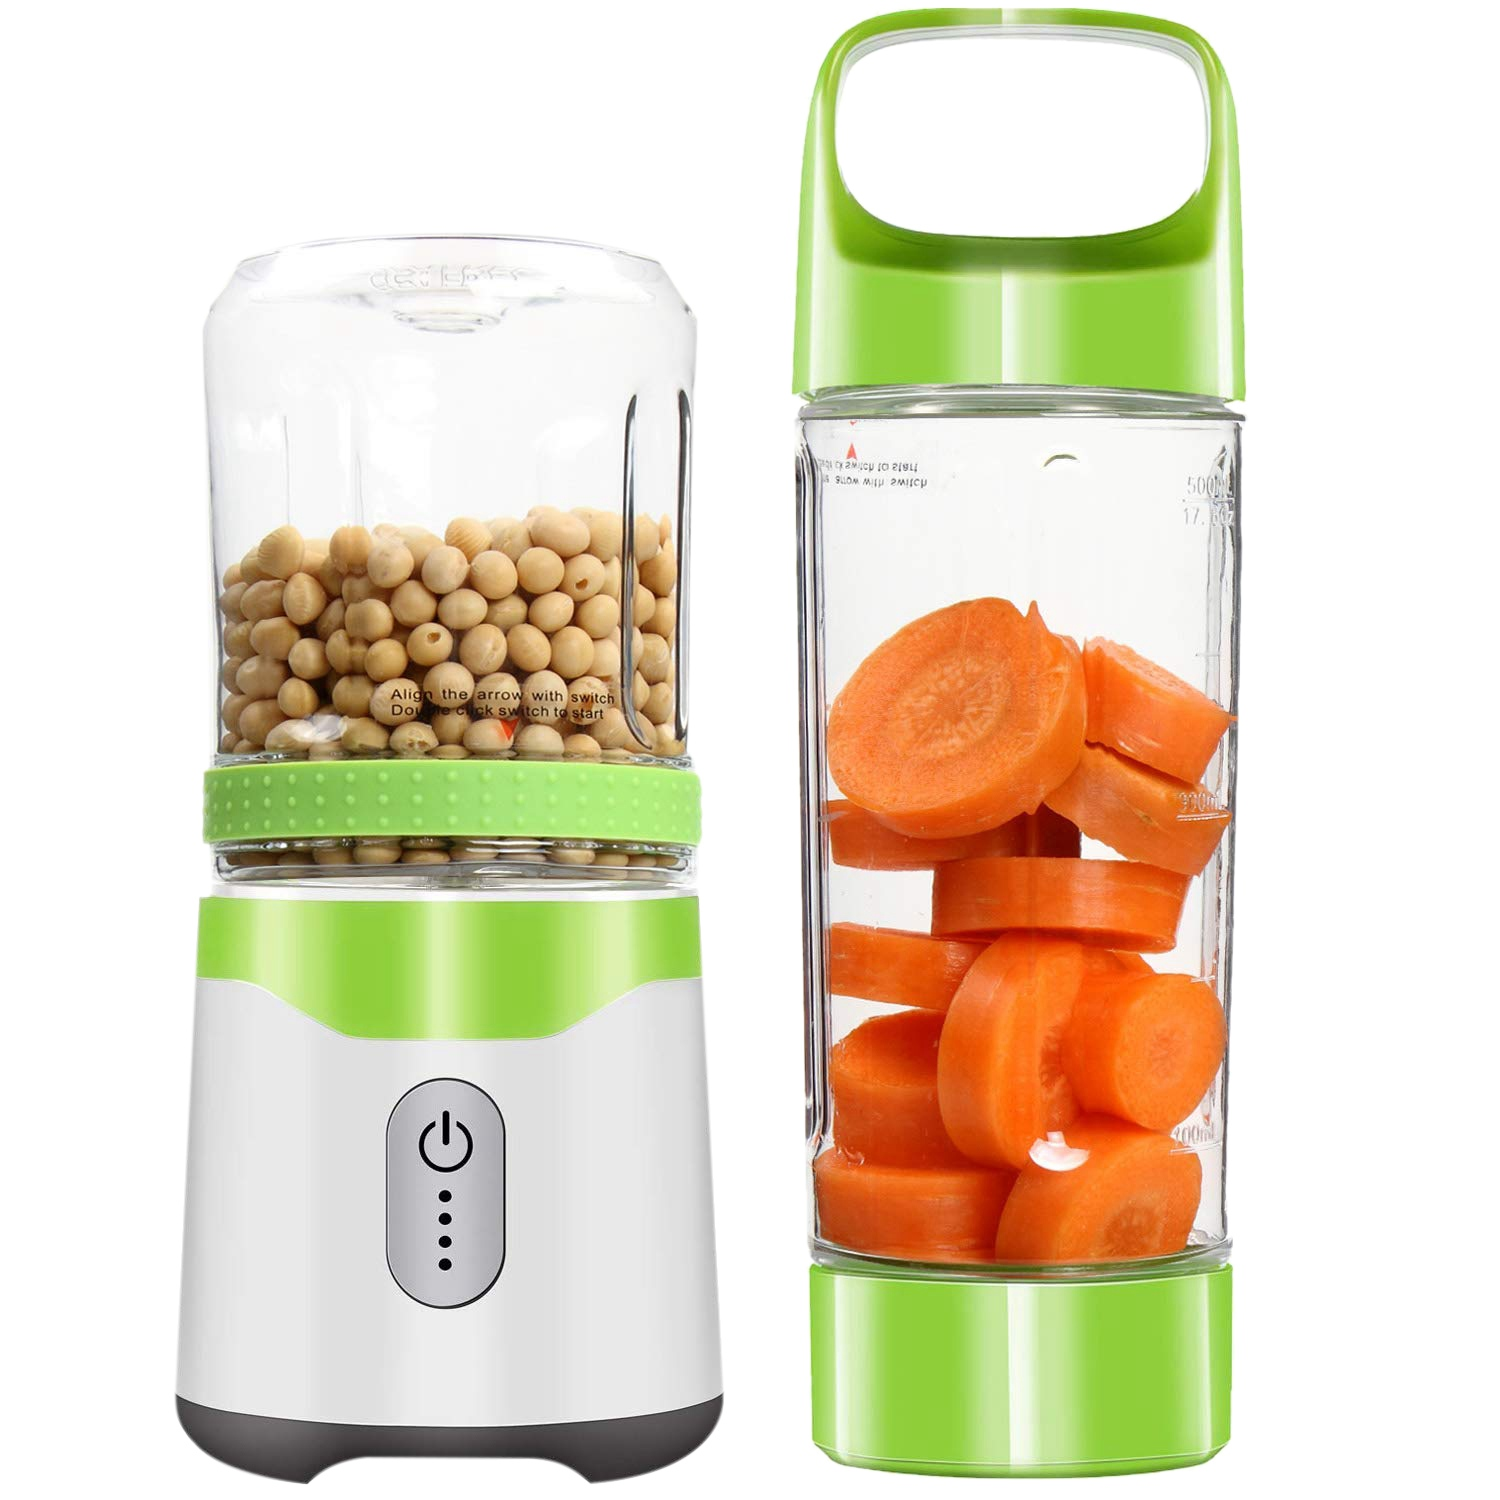 Portable Blender Usb Juice Blender Rechargeable Travel Juice Blender For Shakes And Smoothies Powerful Six Blades